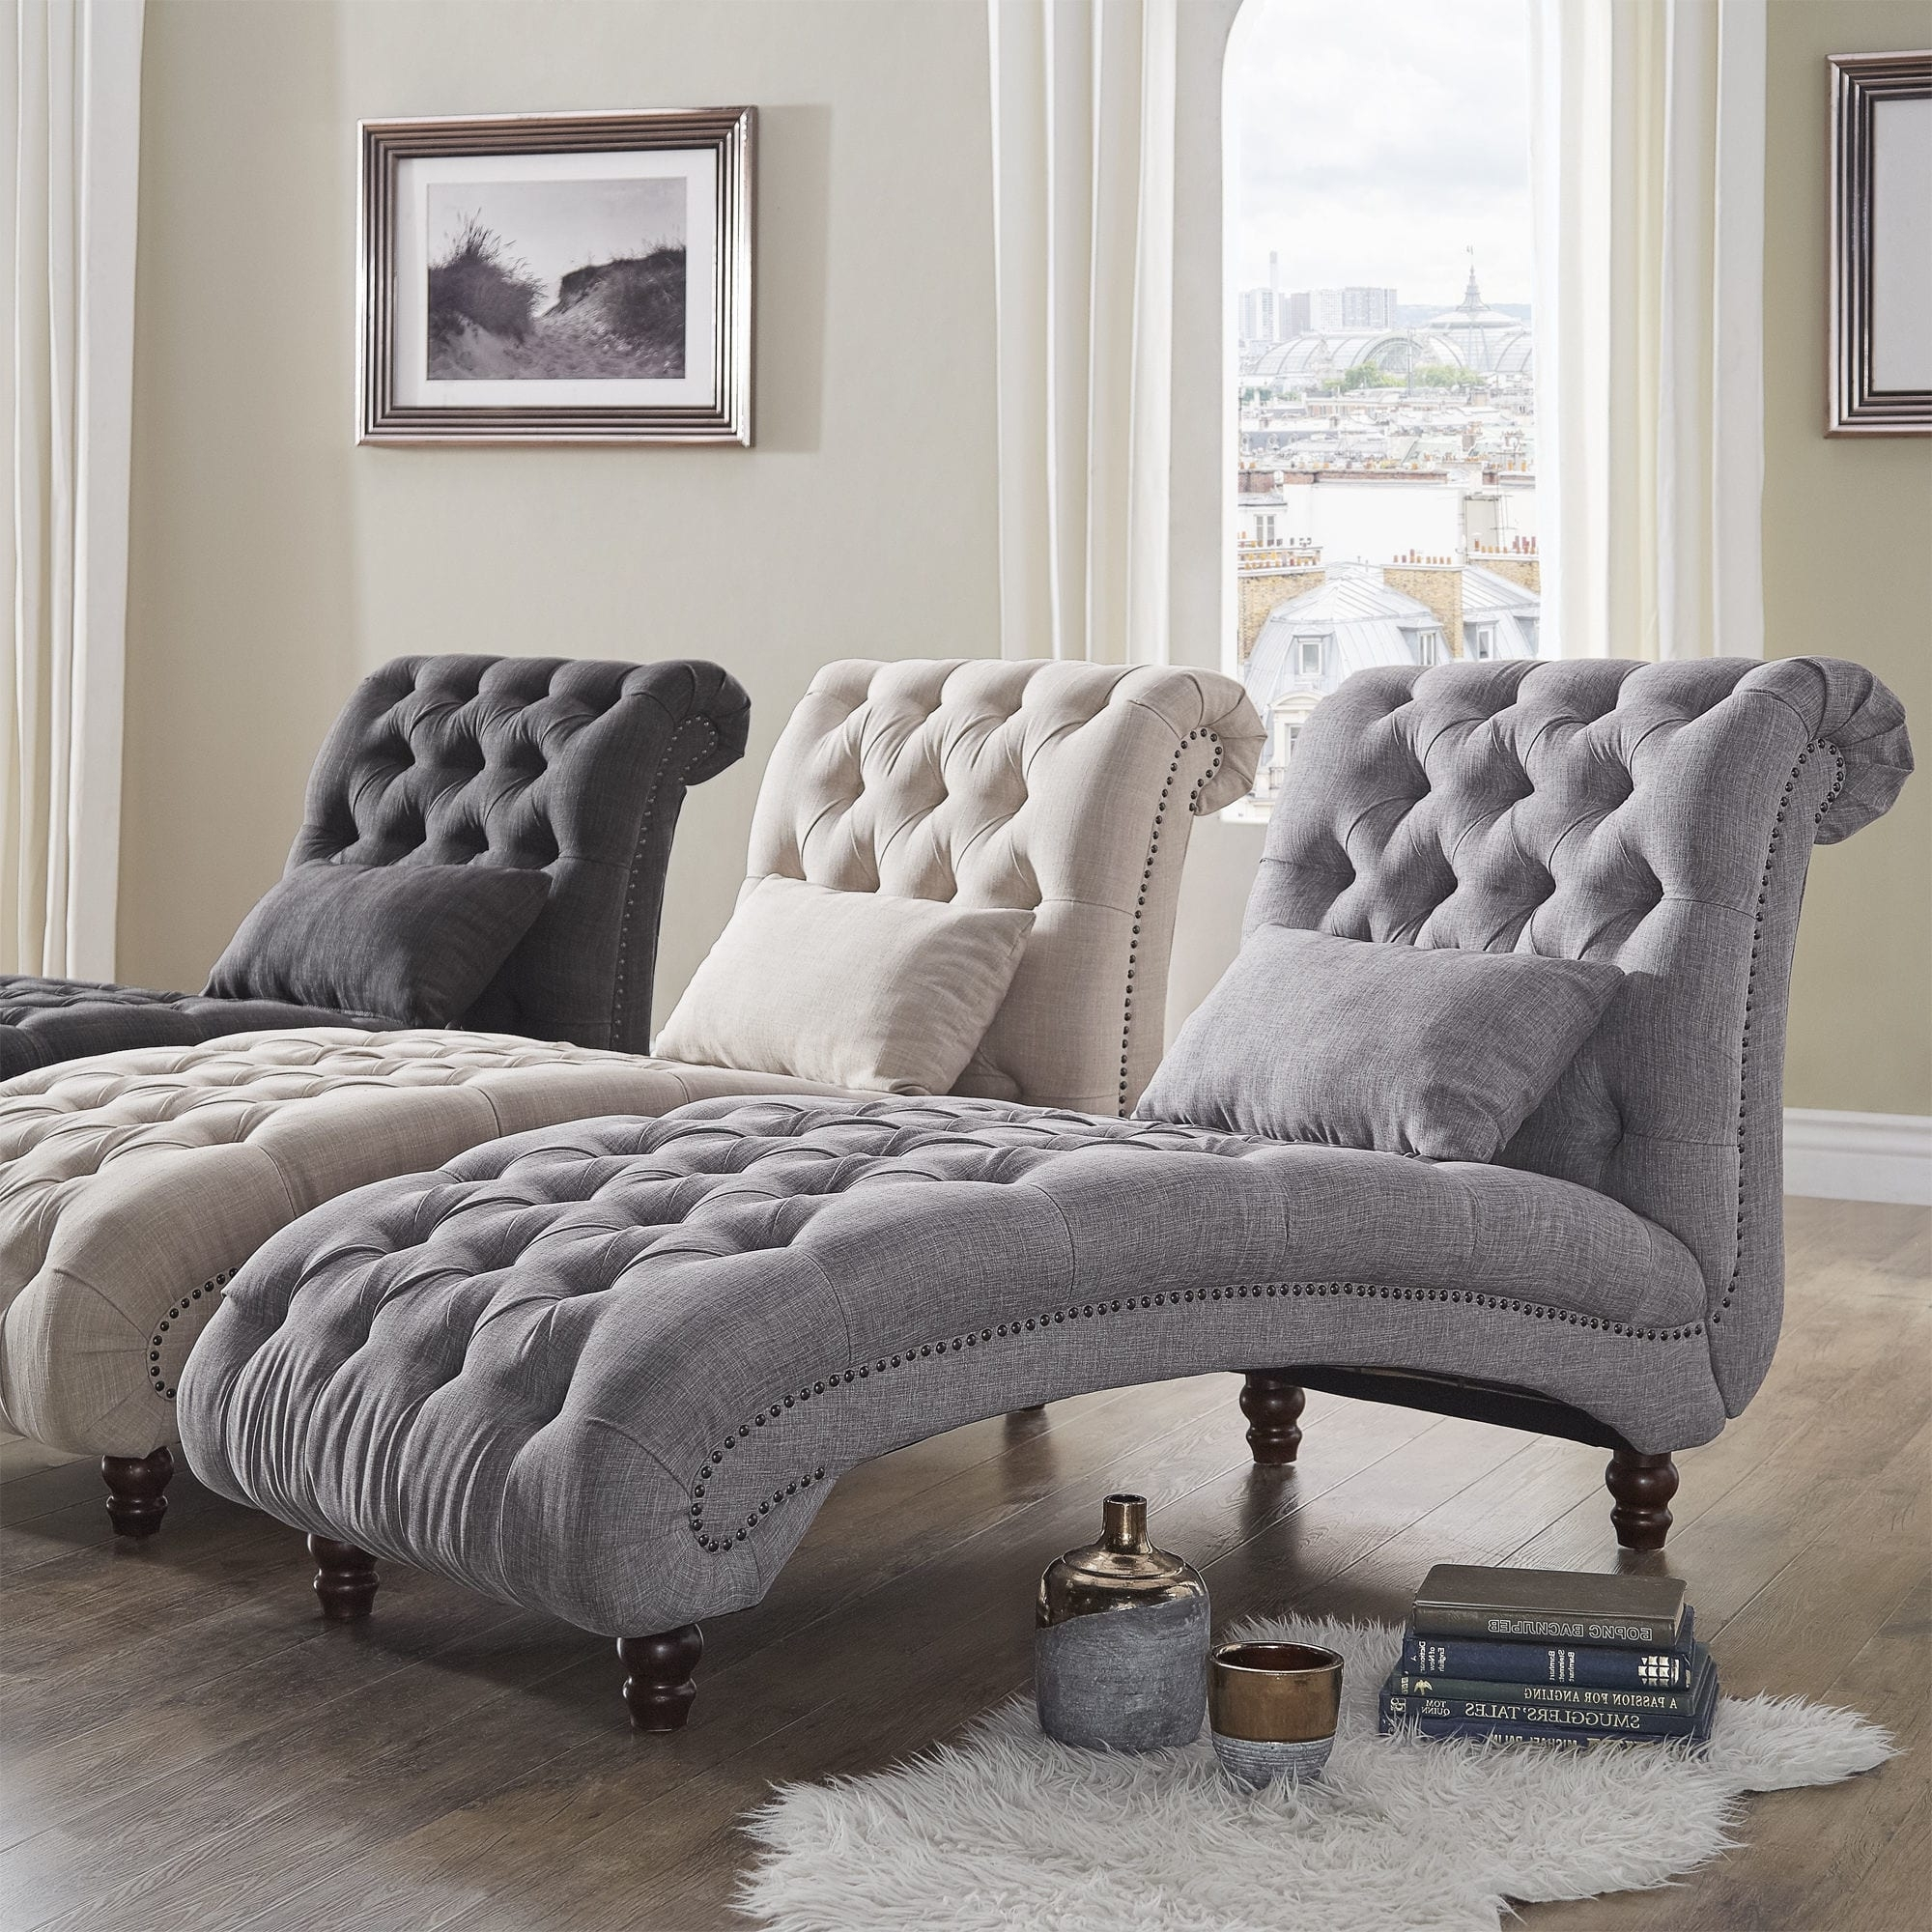 Favorite Knightsbridge Tufted Oversized Chaise Loungeinspire Q Artisan With Oversized Chaise Lounges (View 2 of 15)